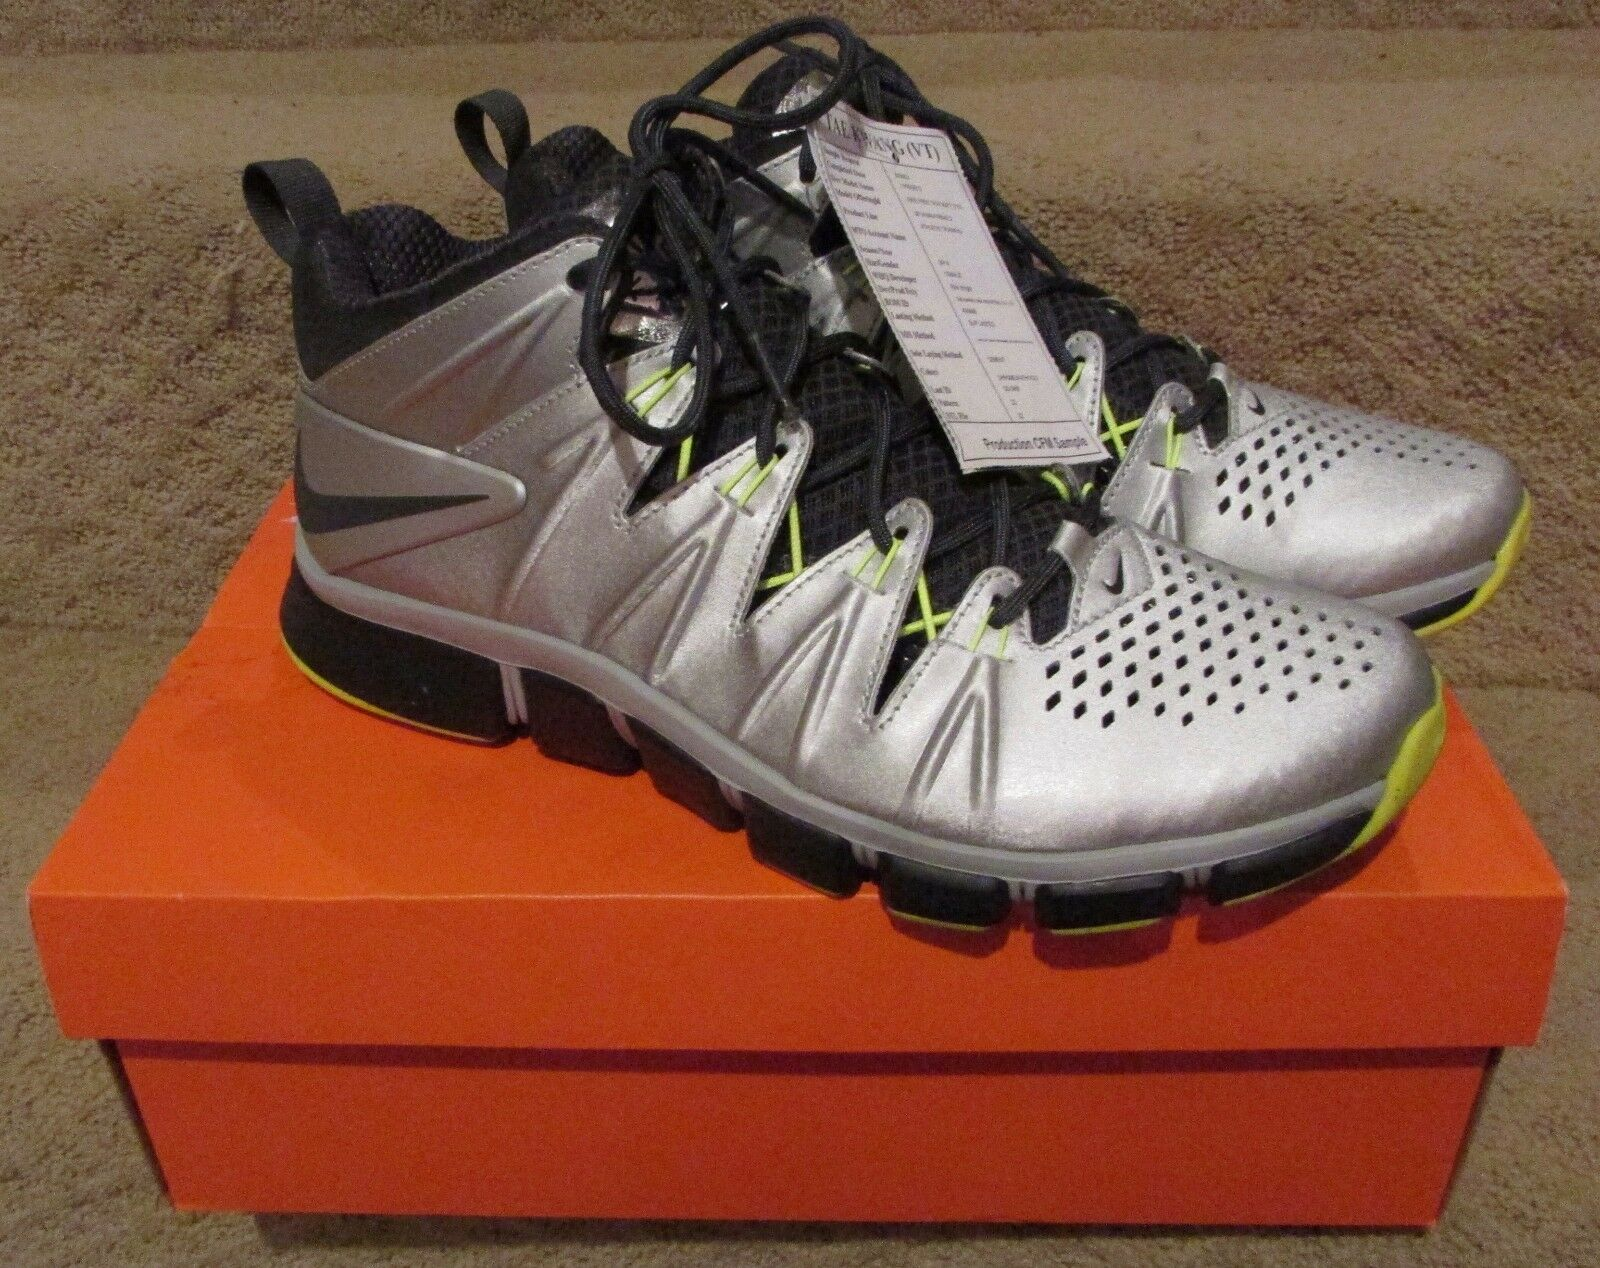 Nike Free Trainer 7.0 SAMPLE Sneakers Comfortable Cheap and beautiful fashion